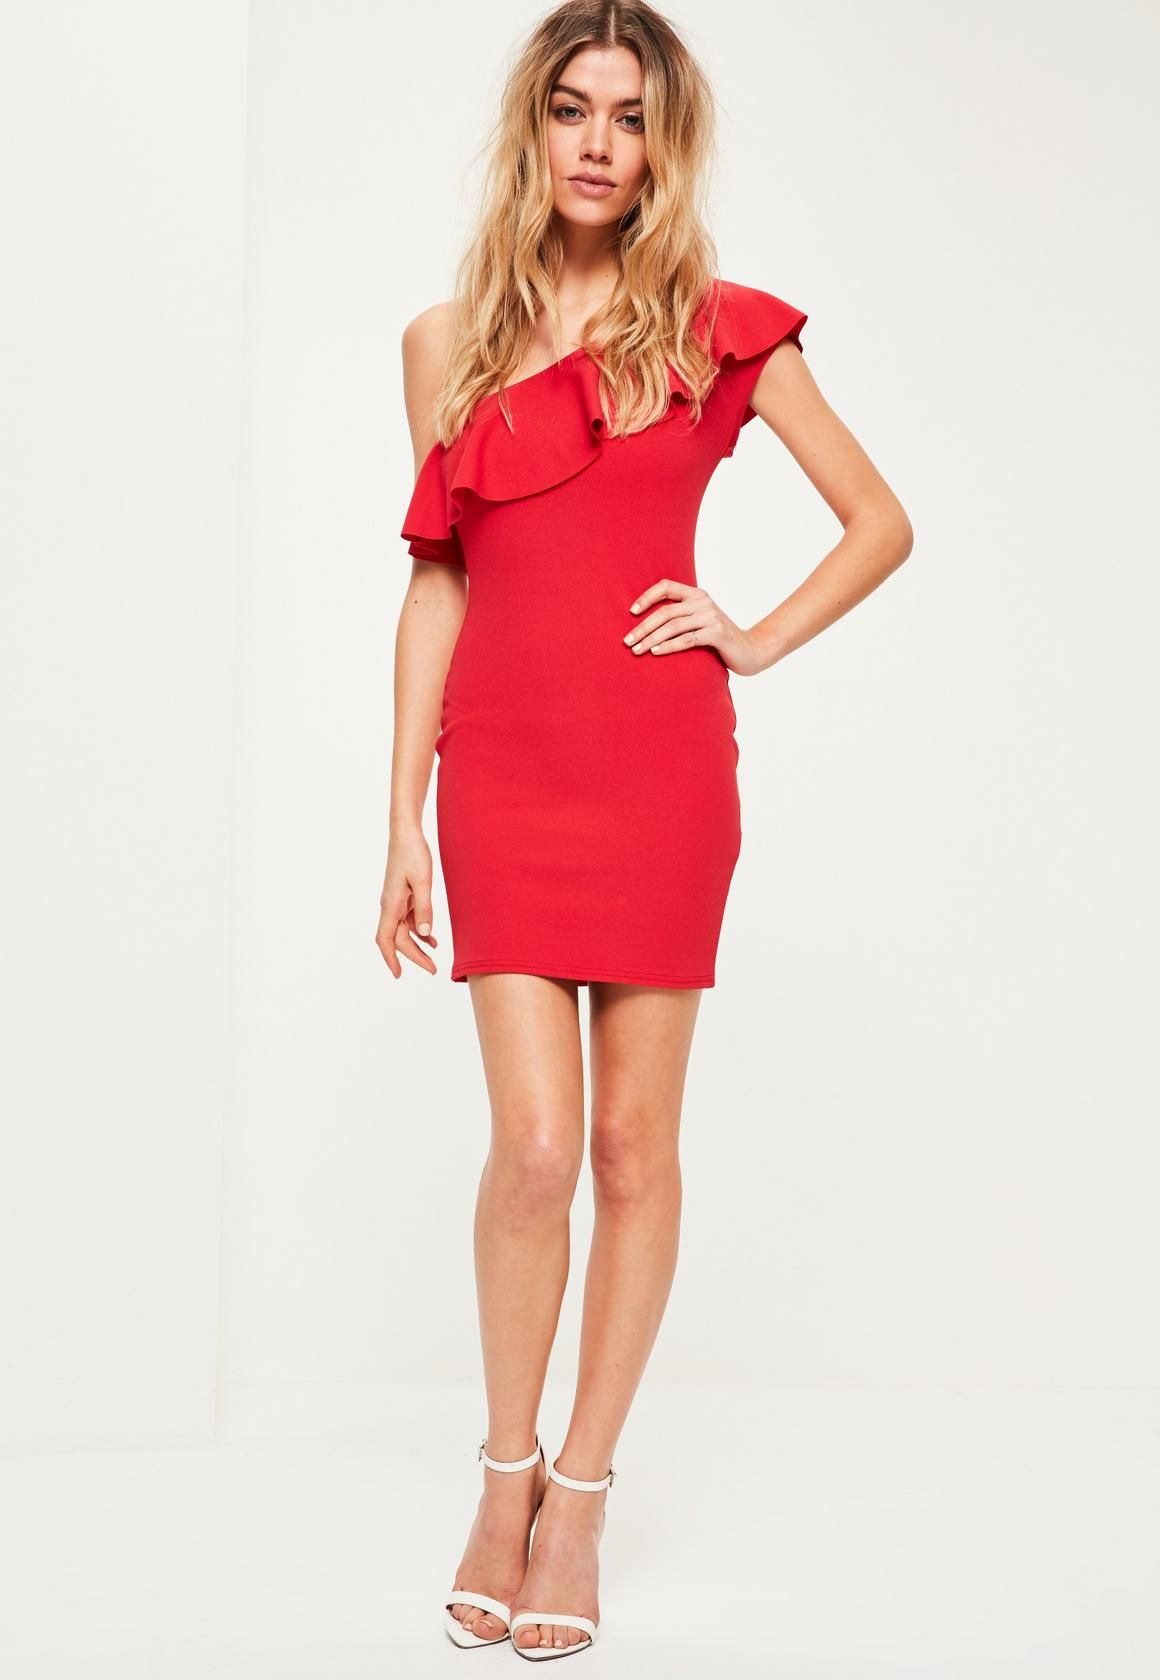 aaccfcb550e5 Missguided - Petite Exclusive Red Off Shoulder Frill Dress | Dress ...